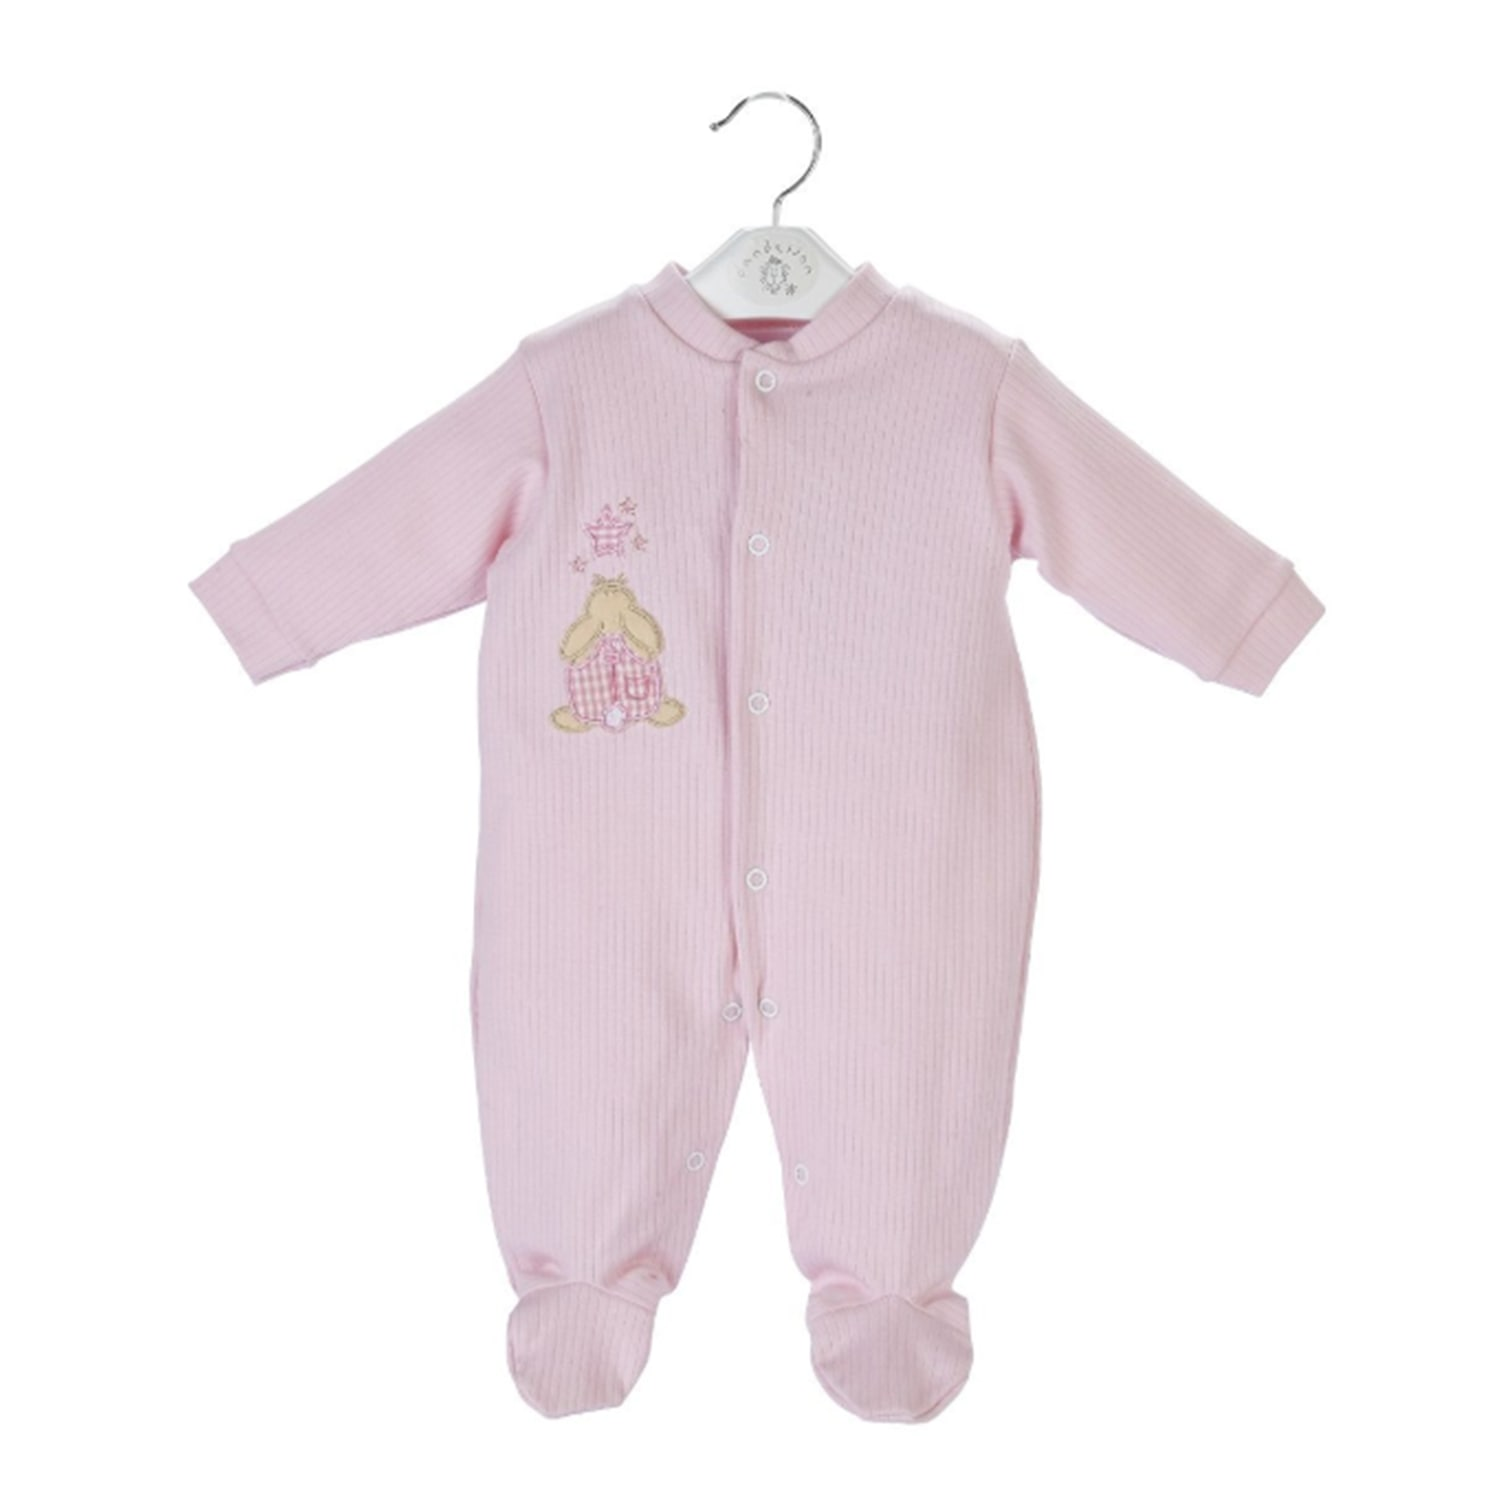 Pink Rabbit Star Ribbed Sleepsuit Mary Shortle